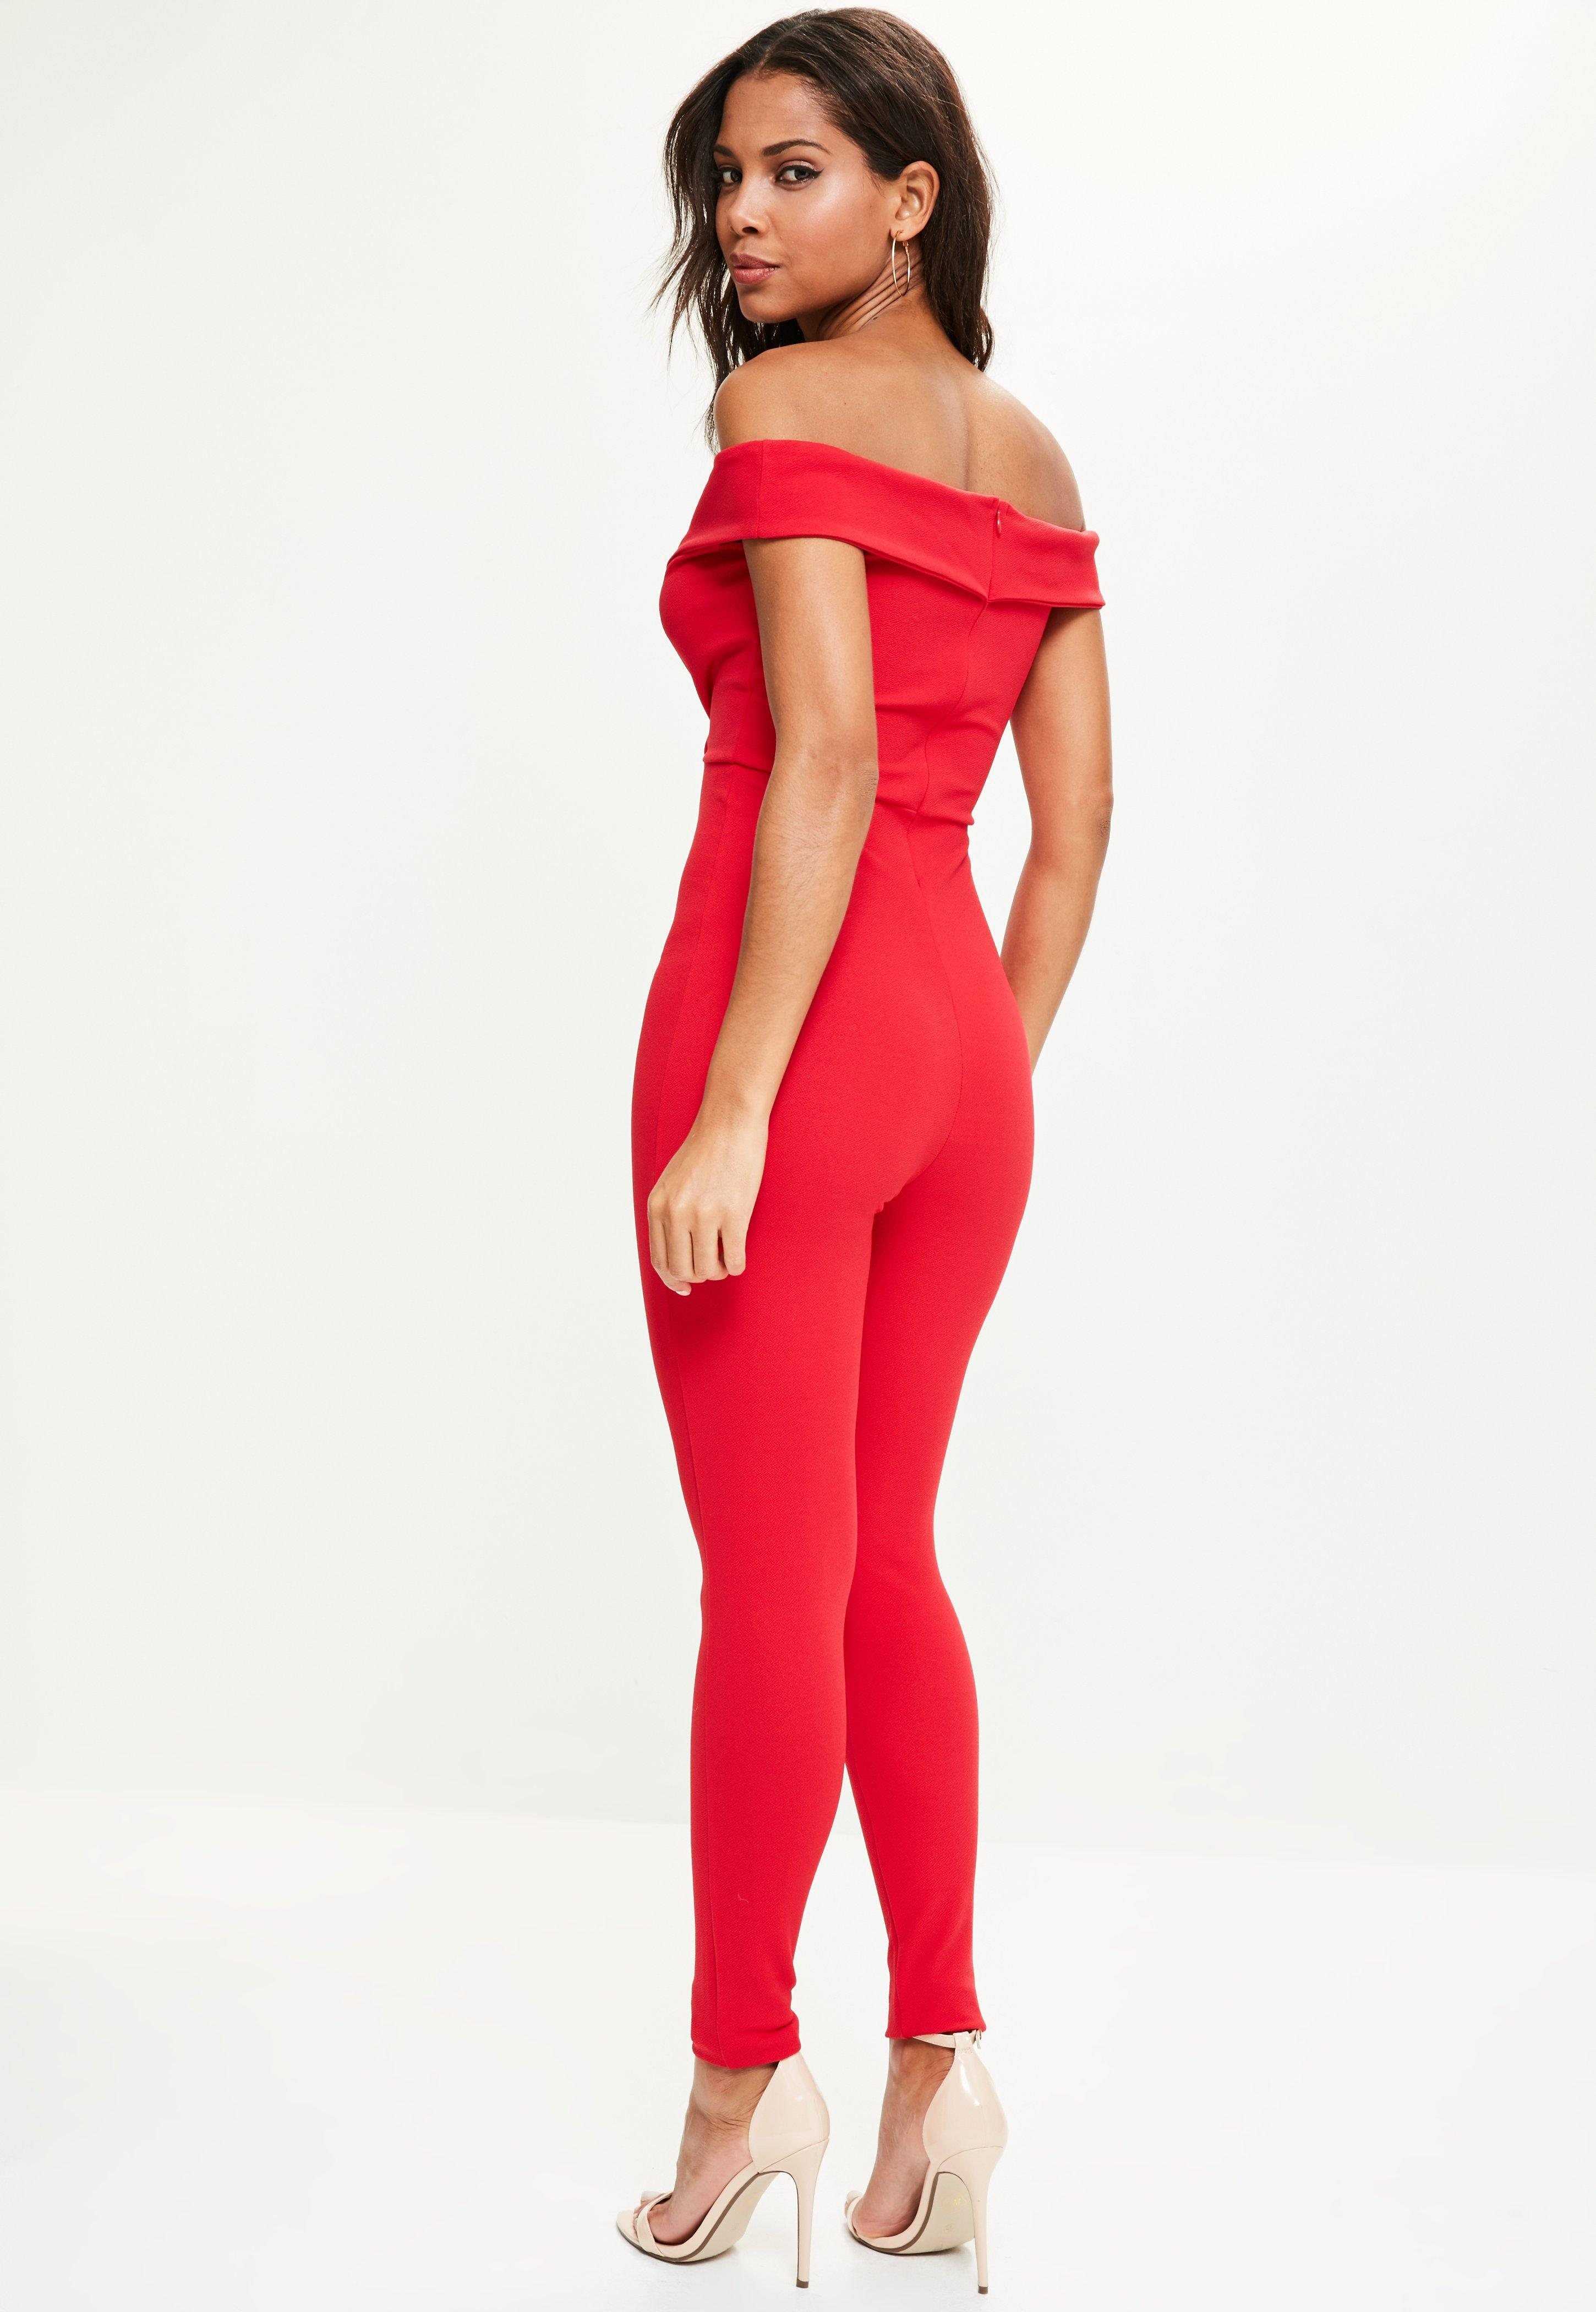 457d765481 Lyst - Missguided Red Wrap Bardot Jumpsuit in Red